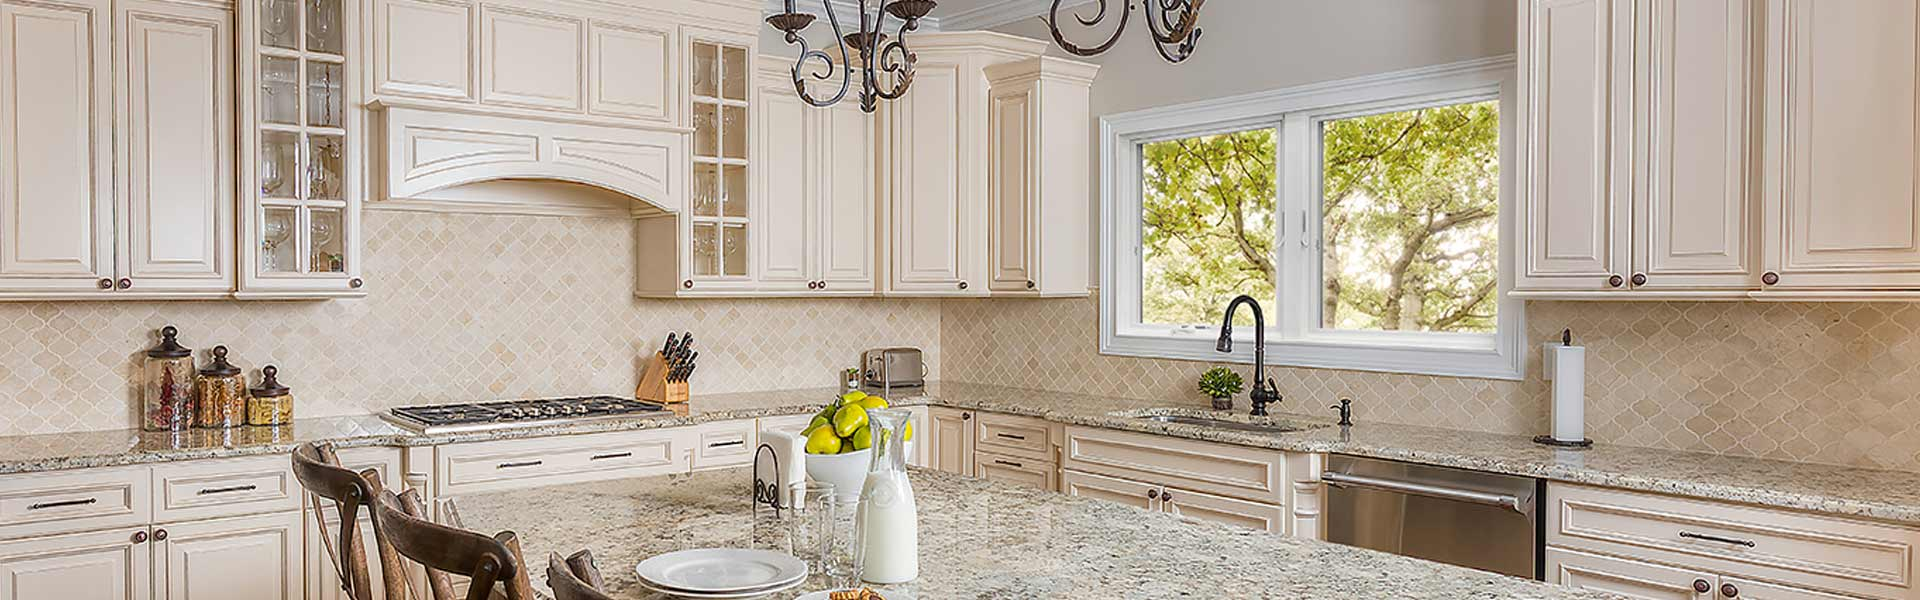 Kitchen Contractor Quality Affordible High End Kitchen Remodels